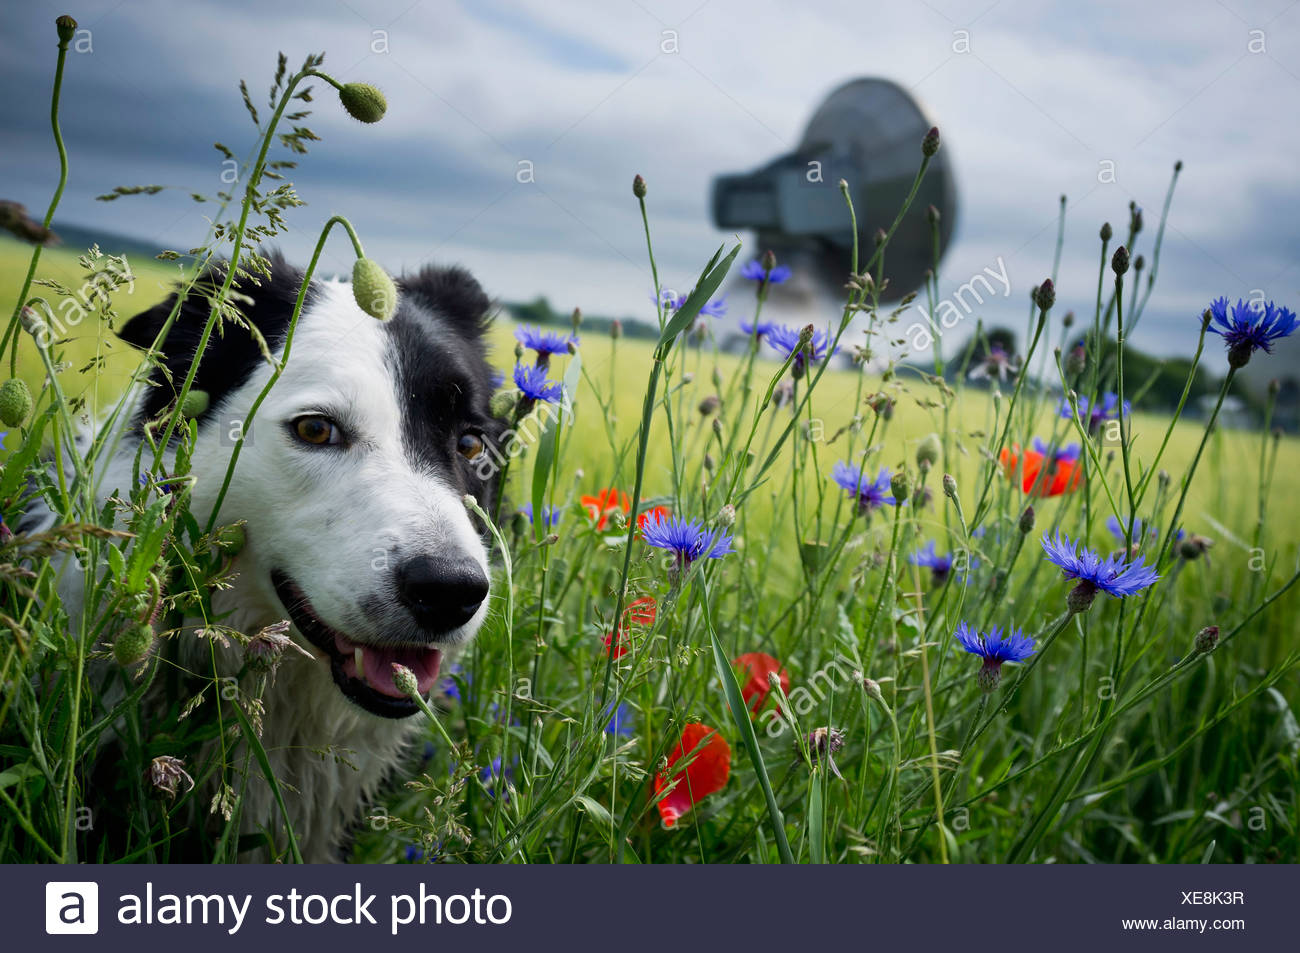 Dog walking in tall grass - Stock Image